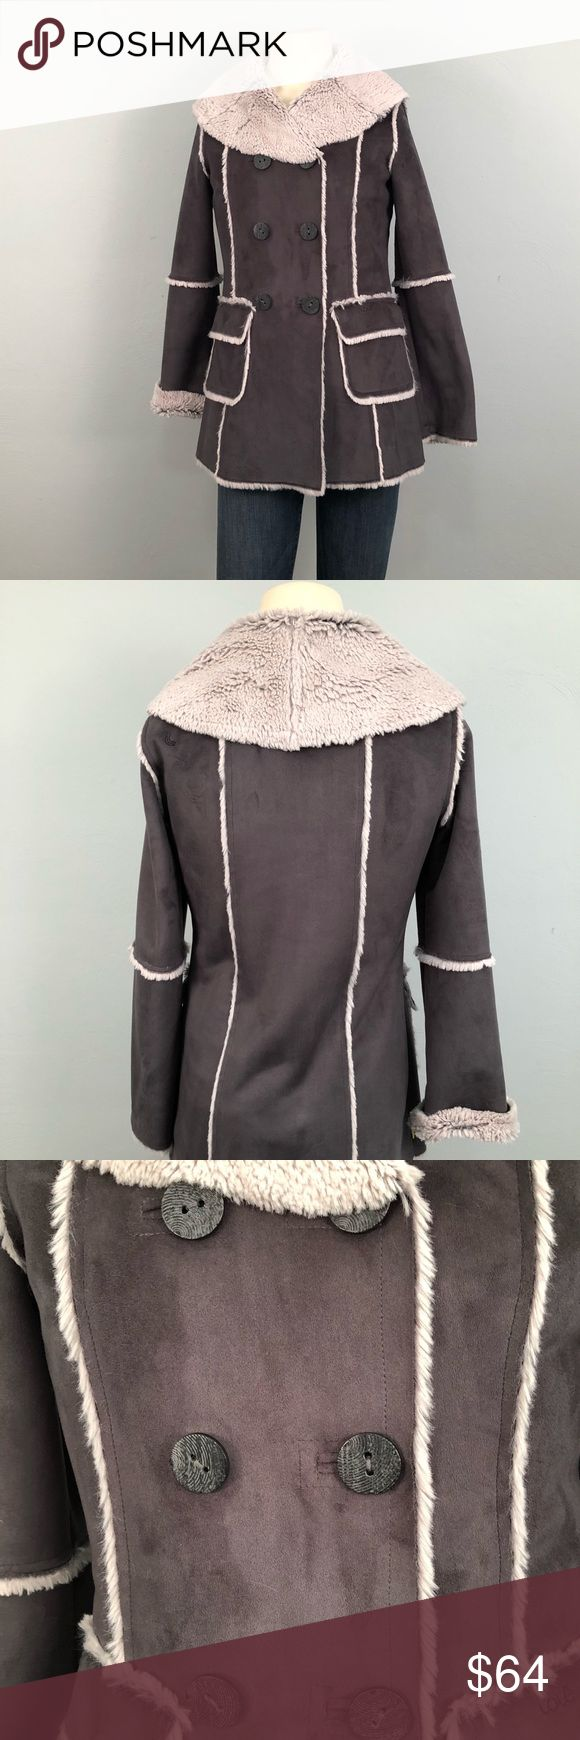 Lolë faux Suede Jacket This jacket is perfect condition! Absolutely no flaws to report. The lining is incredibly soft and warm. The size part of the tag is gone so I took pictures of the measurements. Please feel free to ask further questions and all offers will be considered. Lole Jackets & Coats